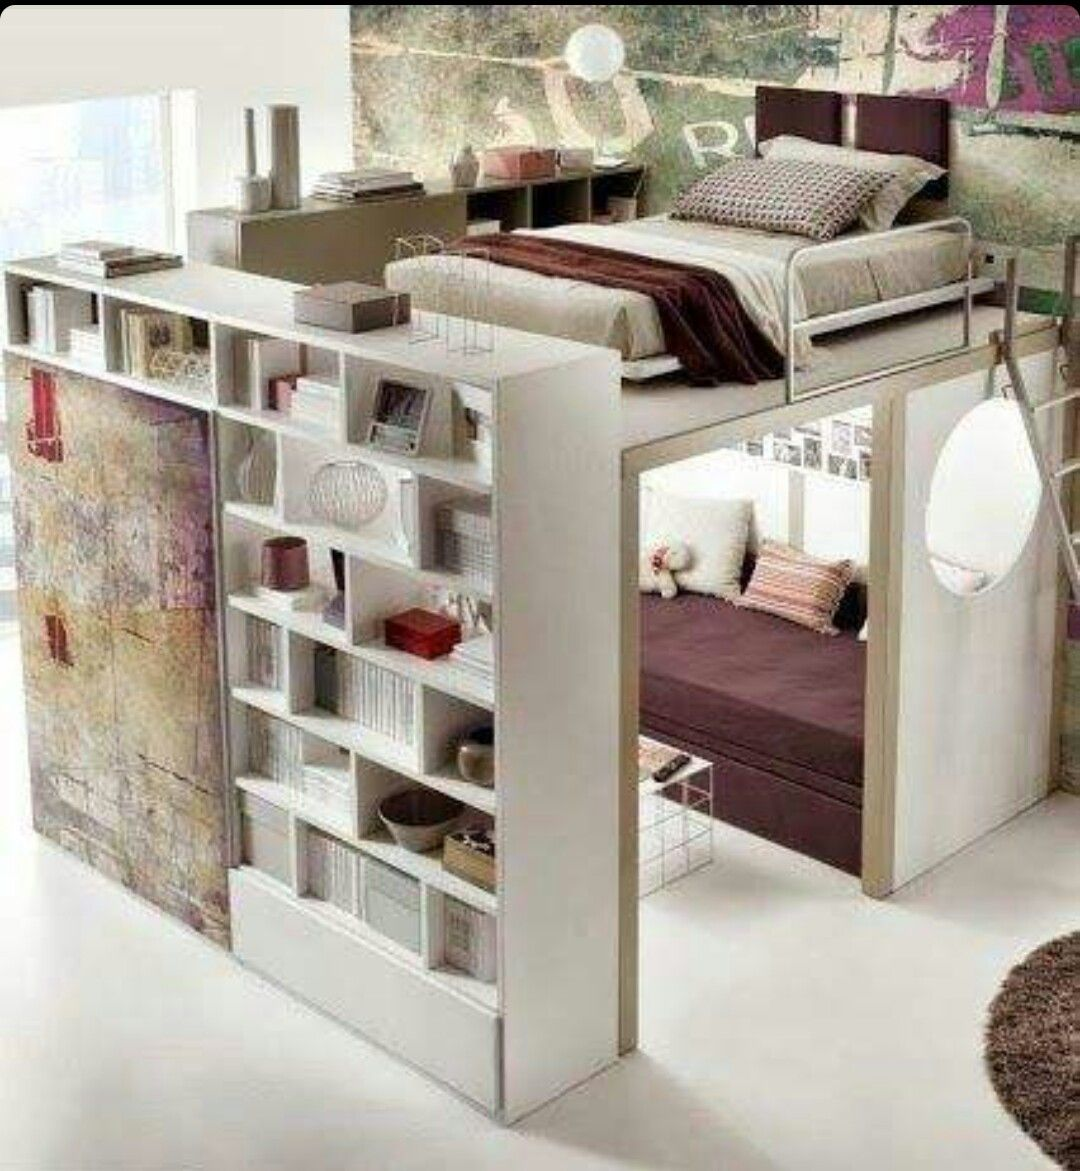 Loft bed privacy ideas  Pin by evichi on decoracion  Pinterest